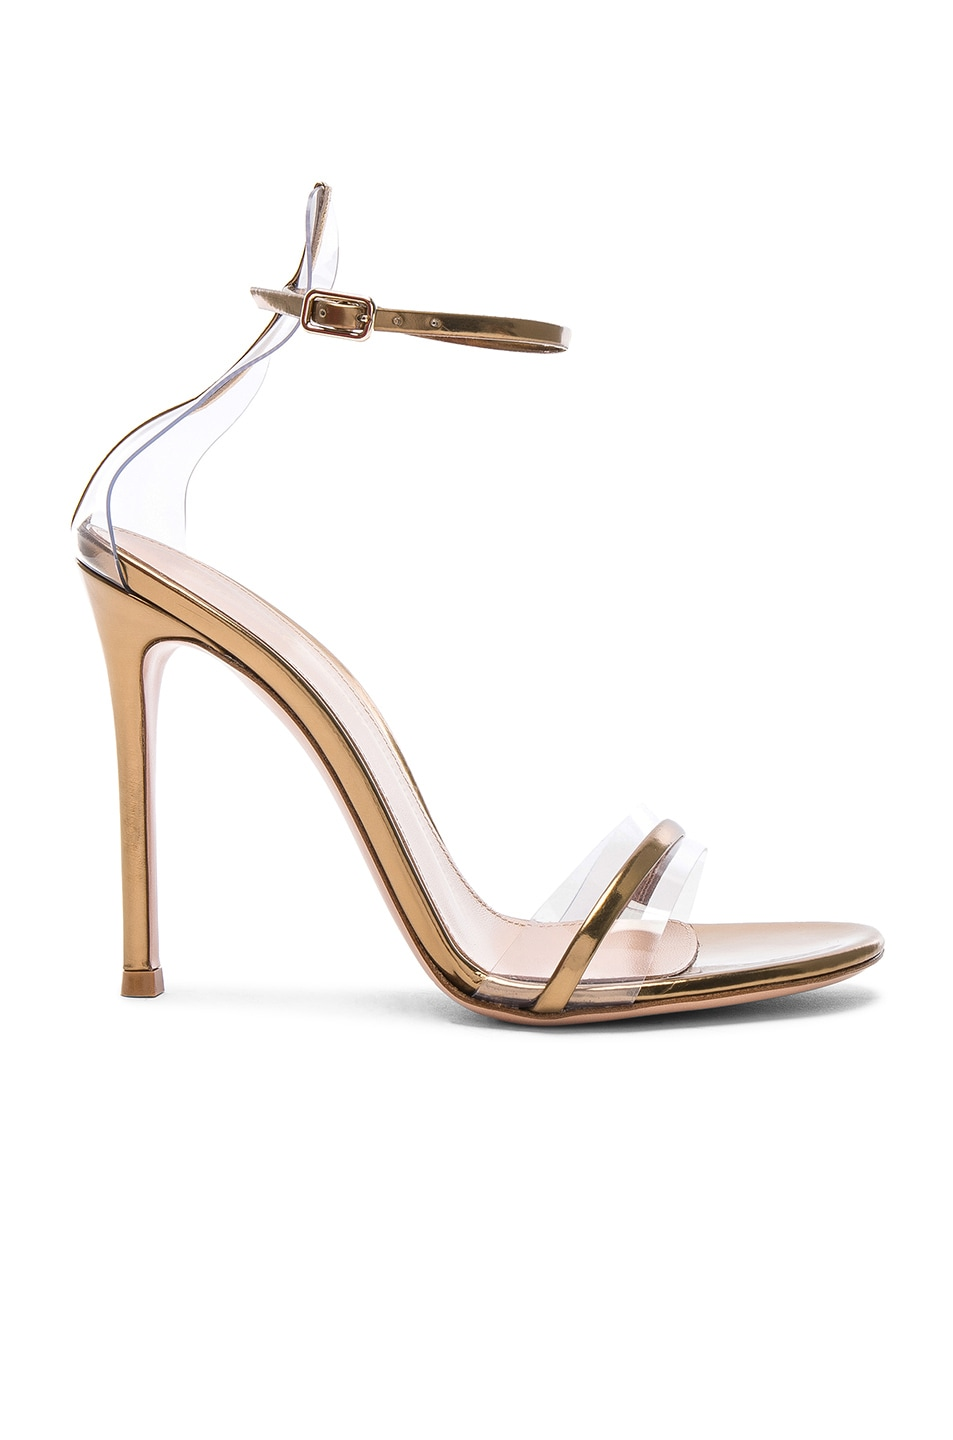 Image 1 of Gianvito Rossi Leather Plexi G-String Heels in Metal Mekong & Transparent